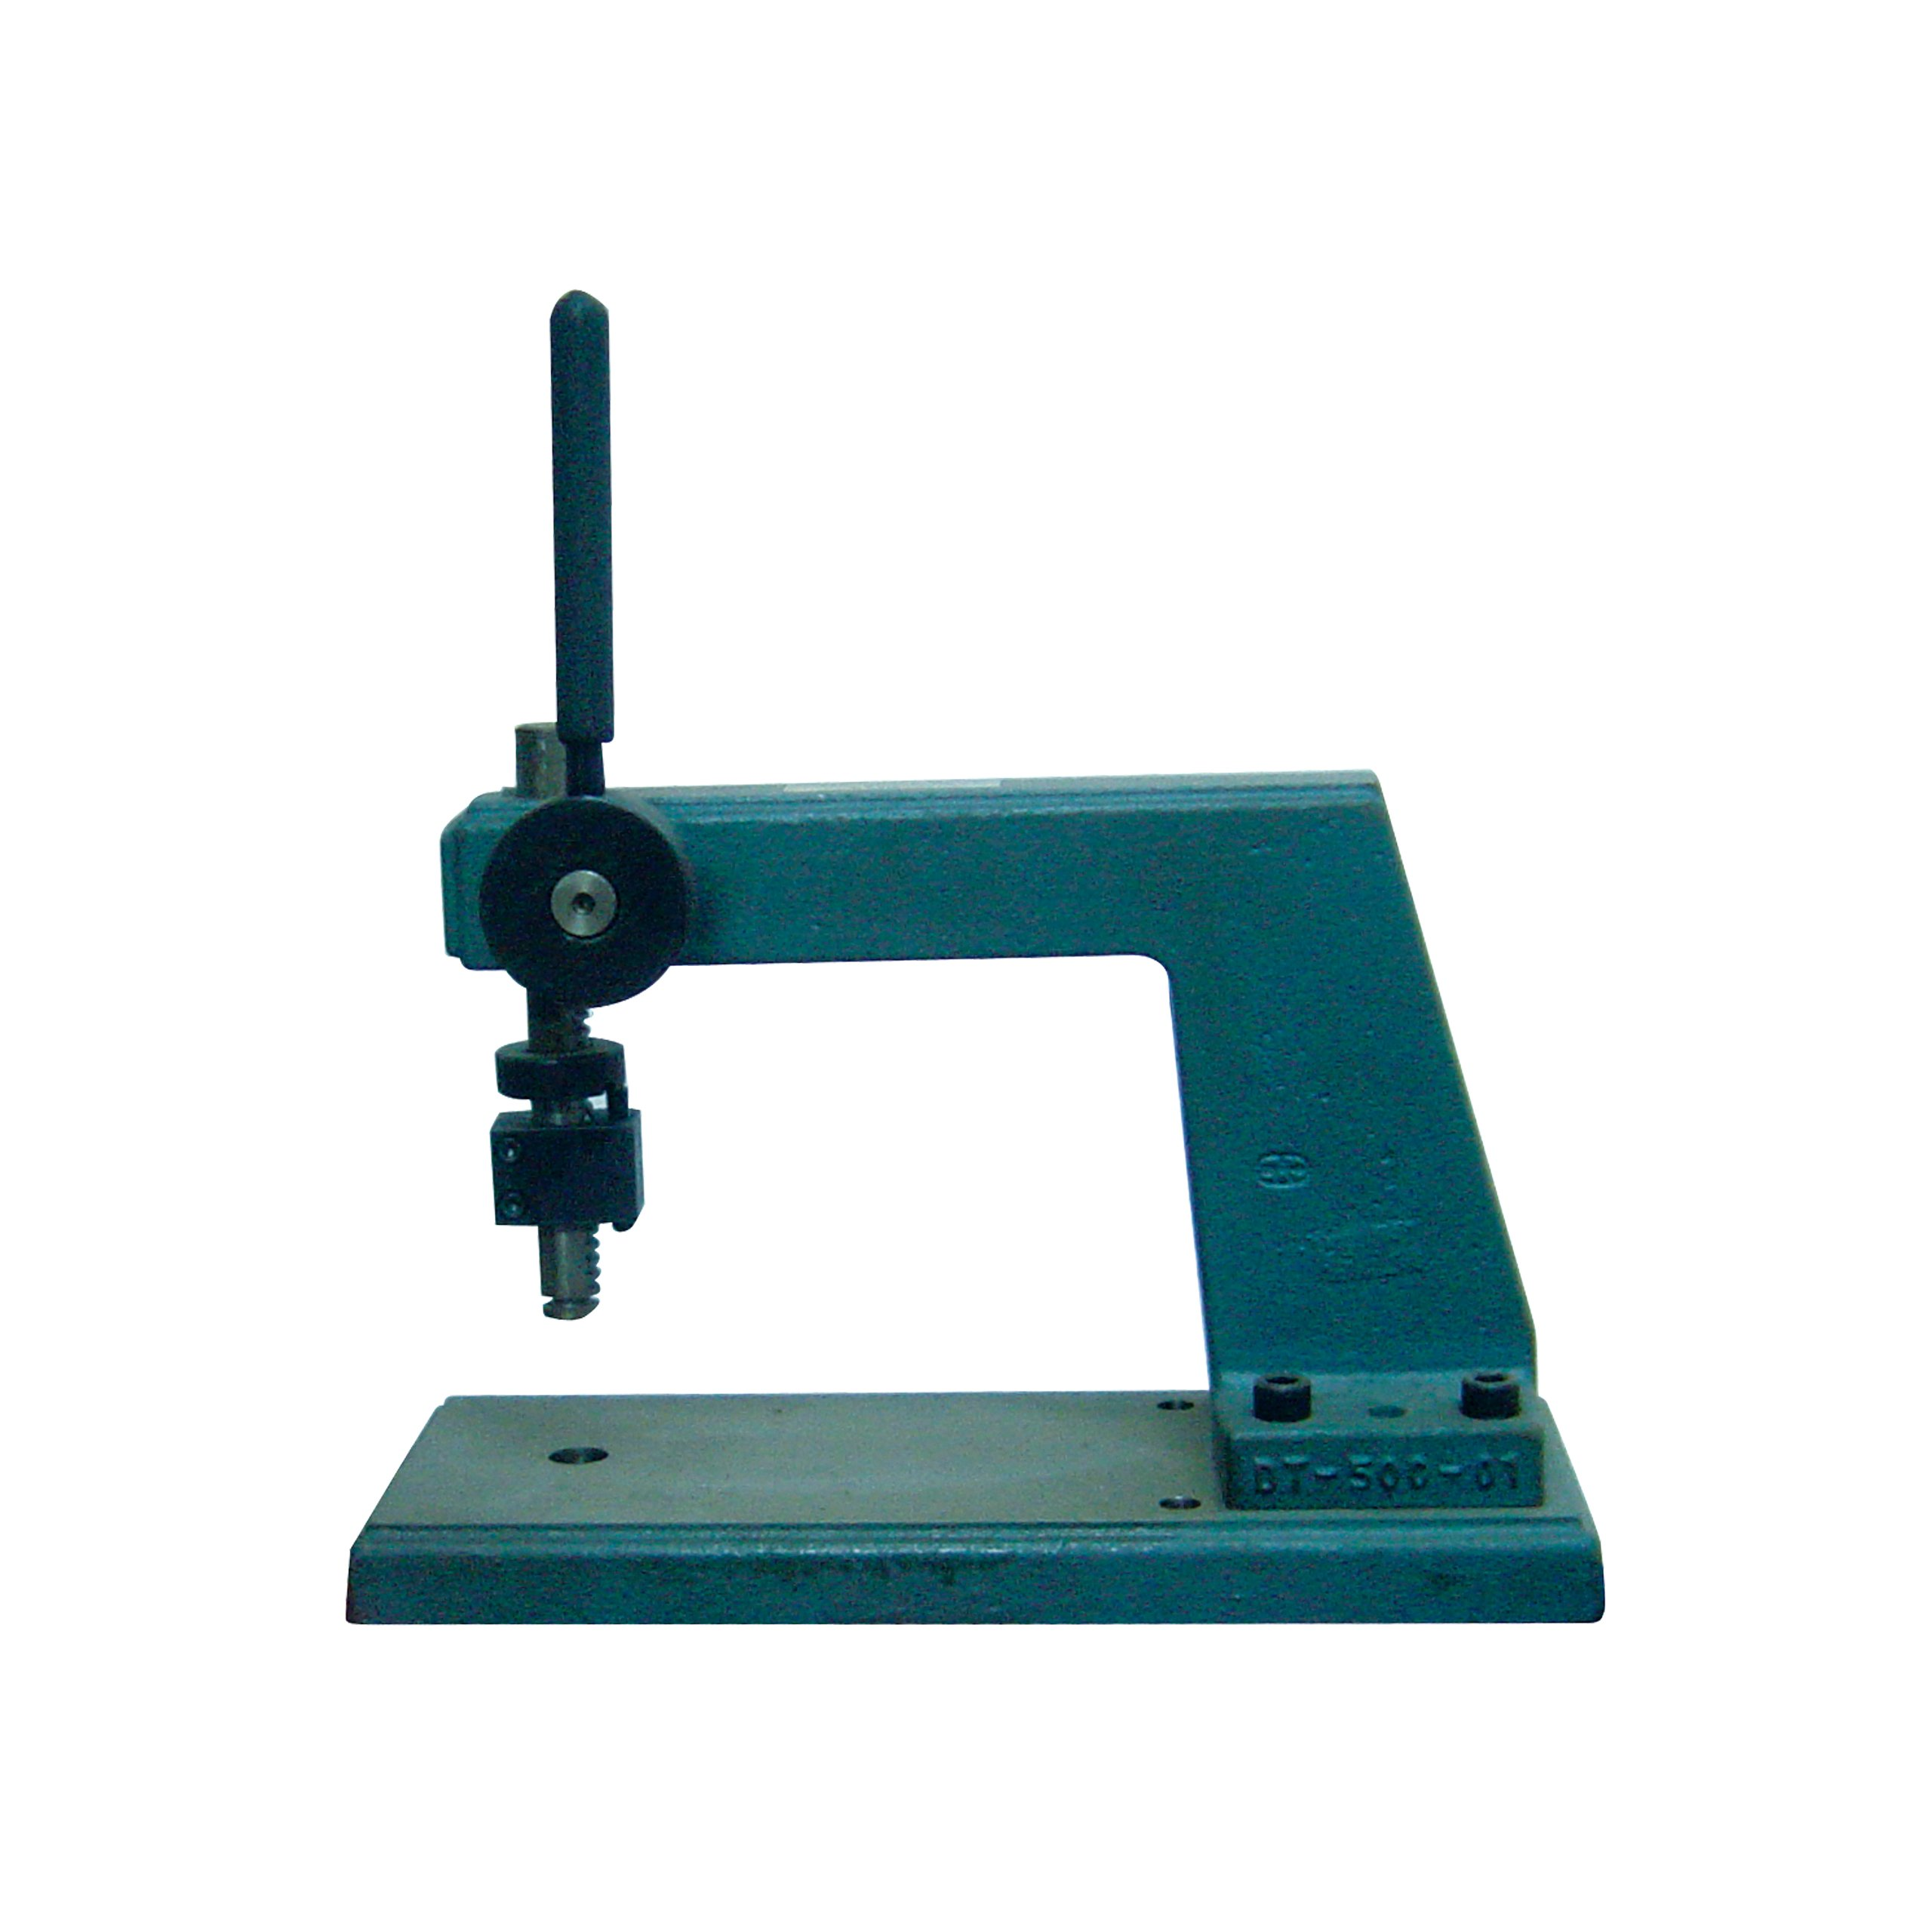 """HHIP 8600-0138 Deep Throat Lever Arbor Press, .25 ton Capacity, 12"""" Length x 5"""" Width Base, 7.6"""" Height (Pack of 1)"""